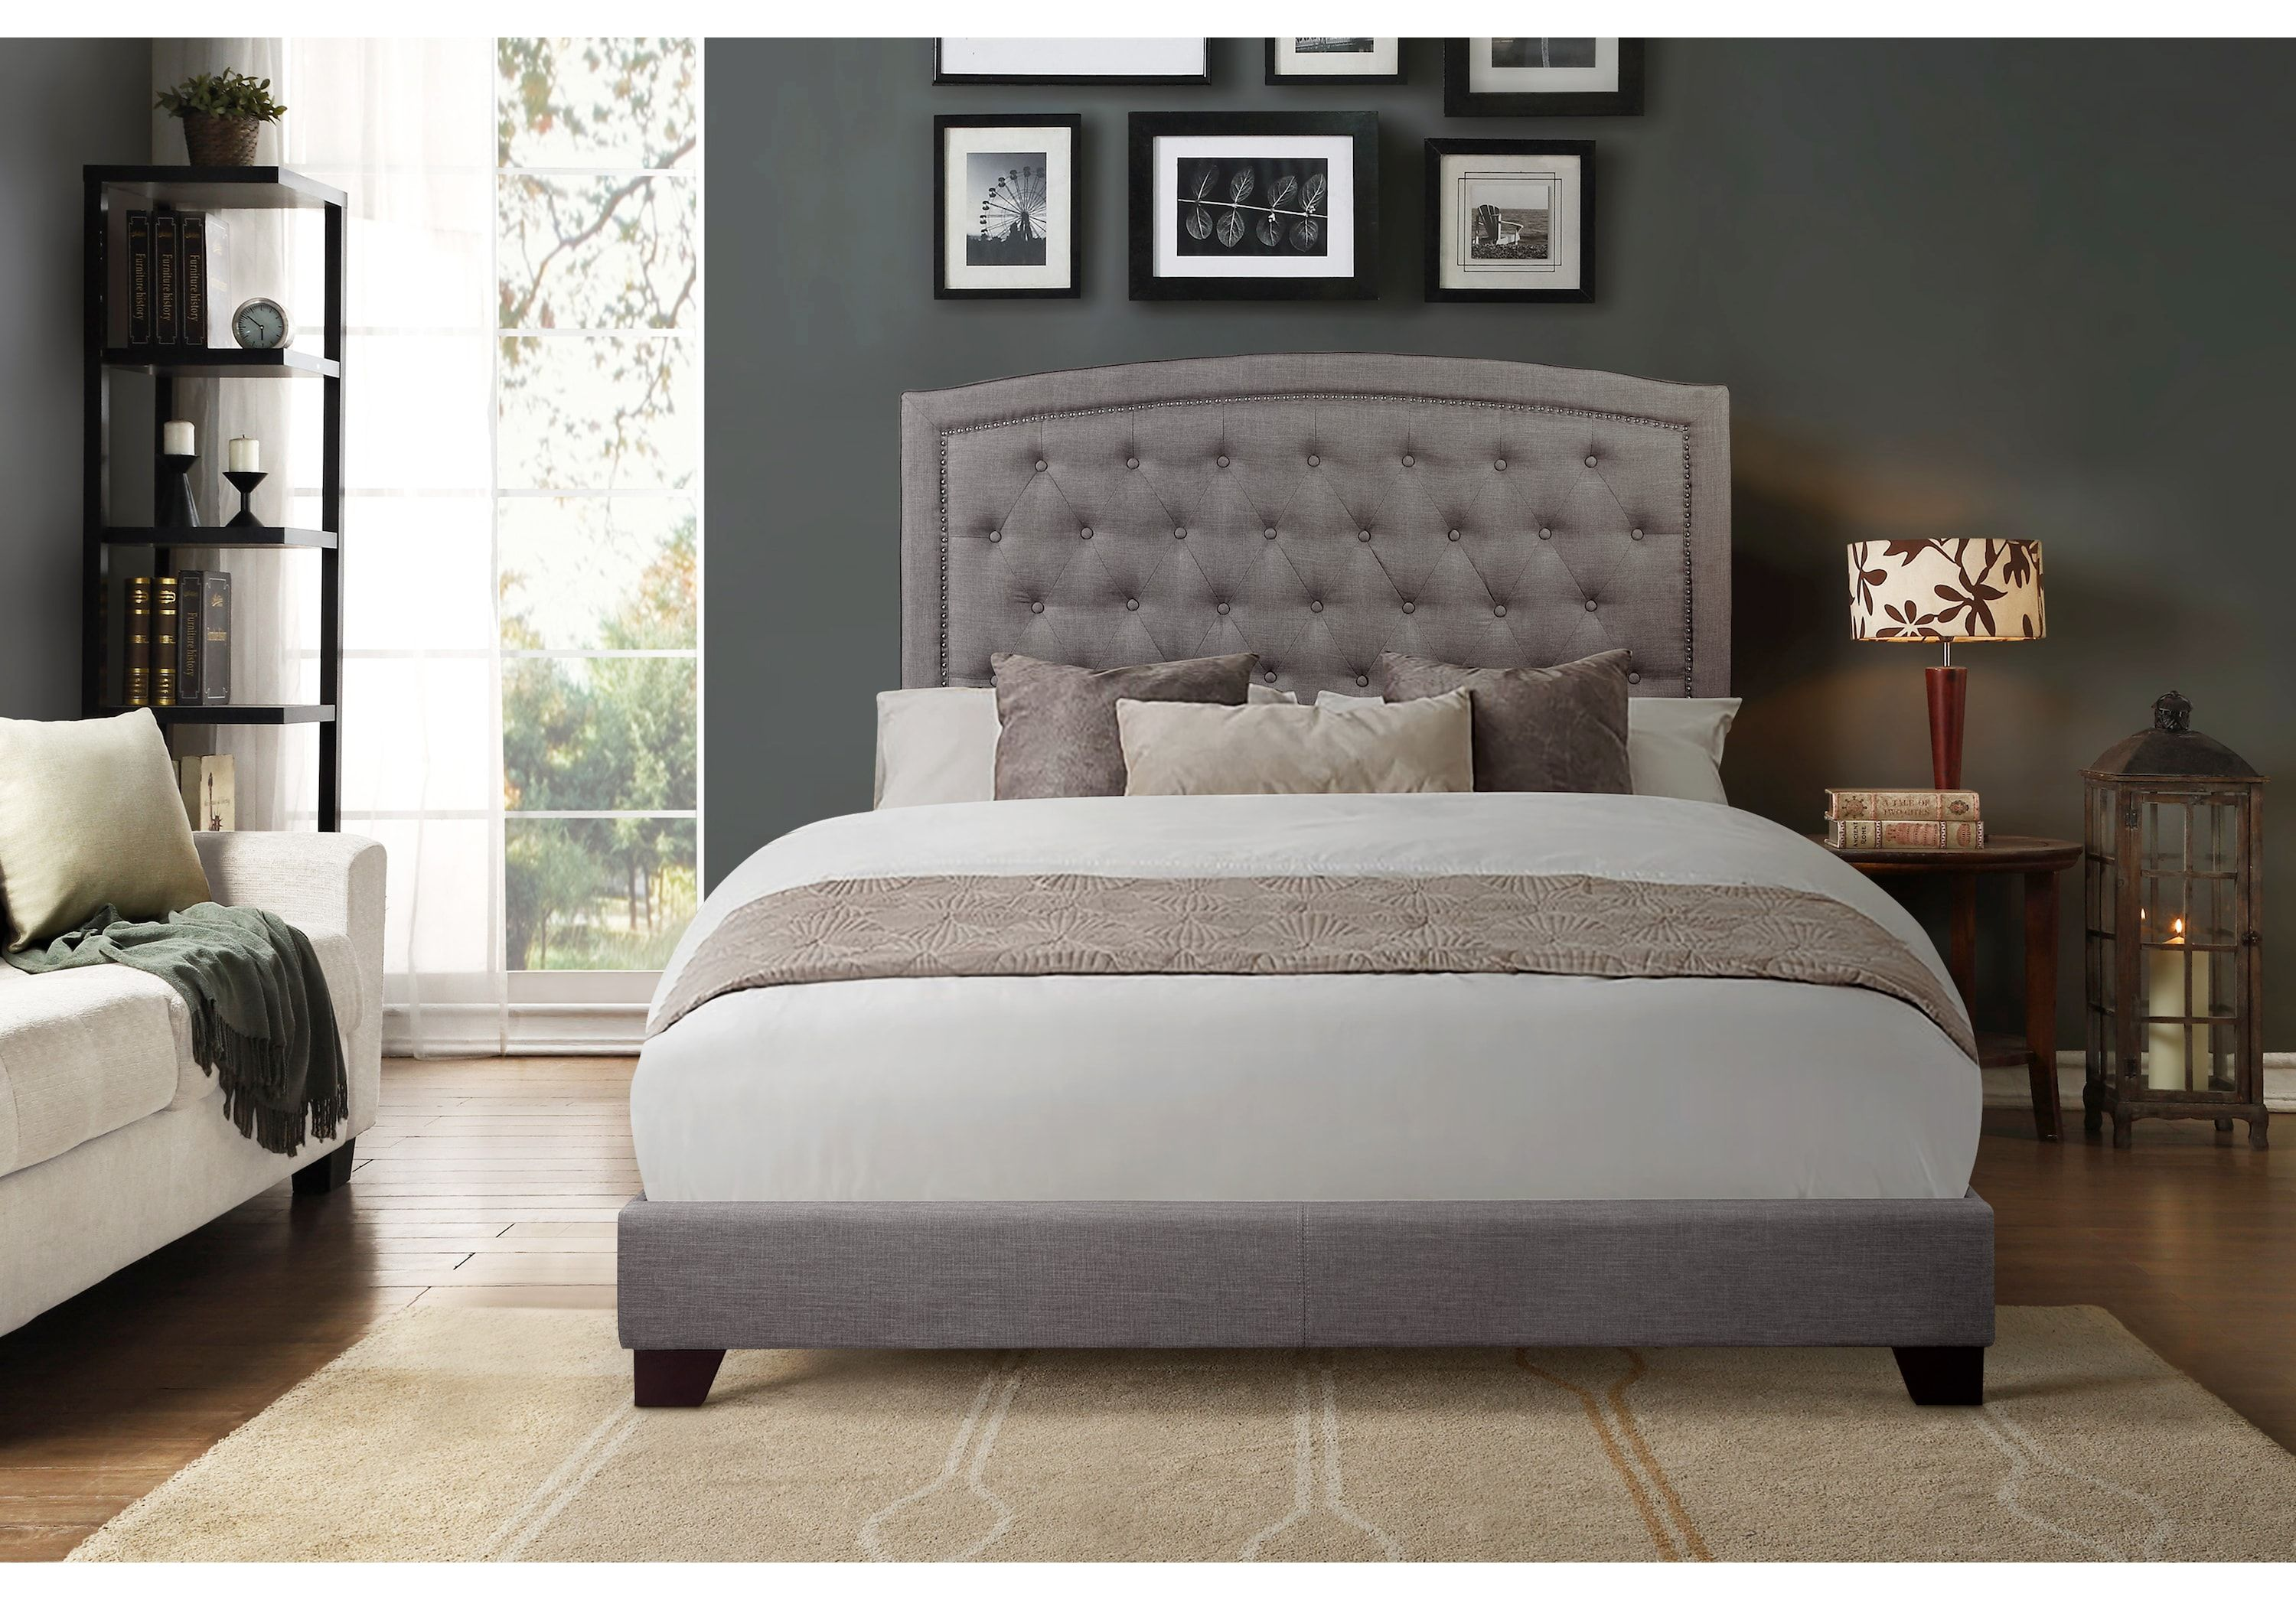 Juneberry Gray King Upholstered Bed King Upholstered Bed